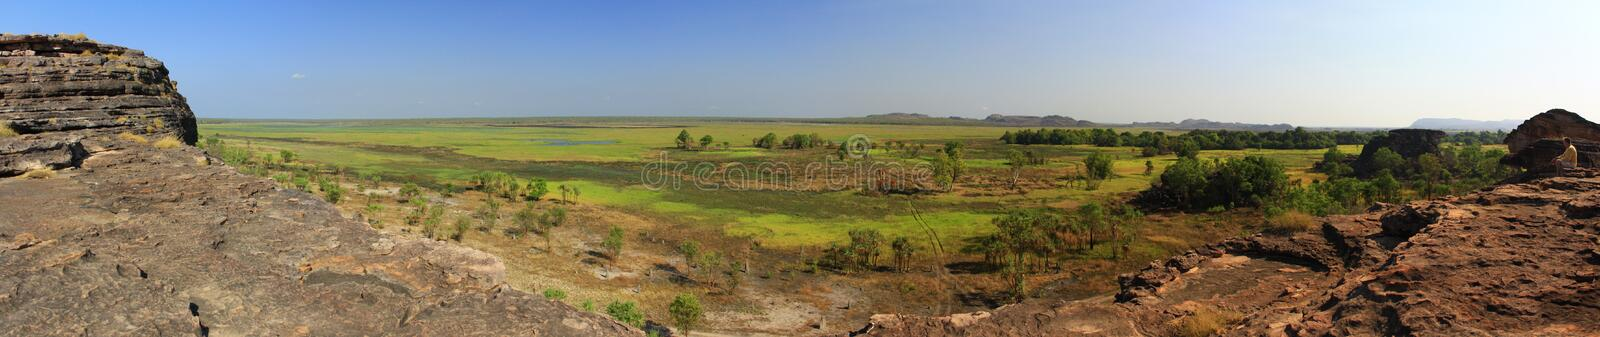 Panorama Ubirr, parc national de kakadu, Australie photos stock